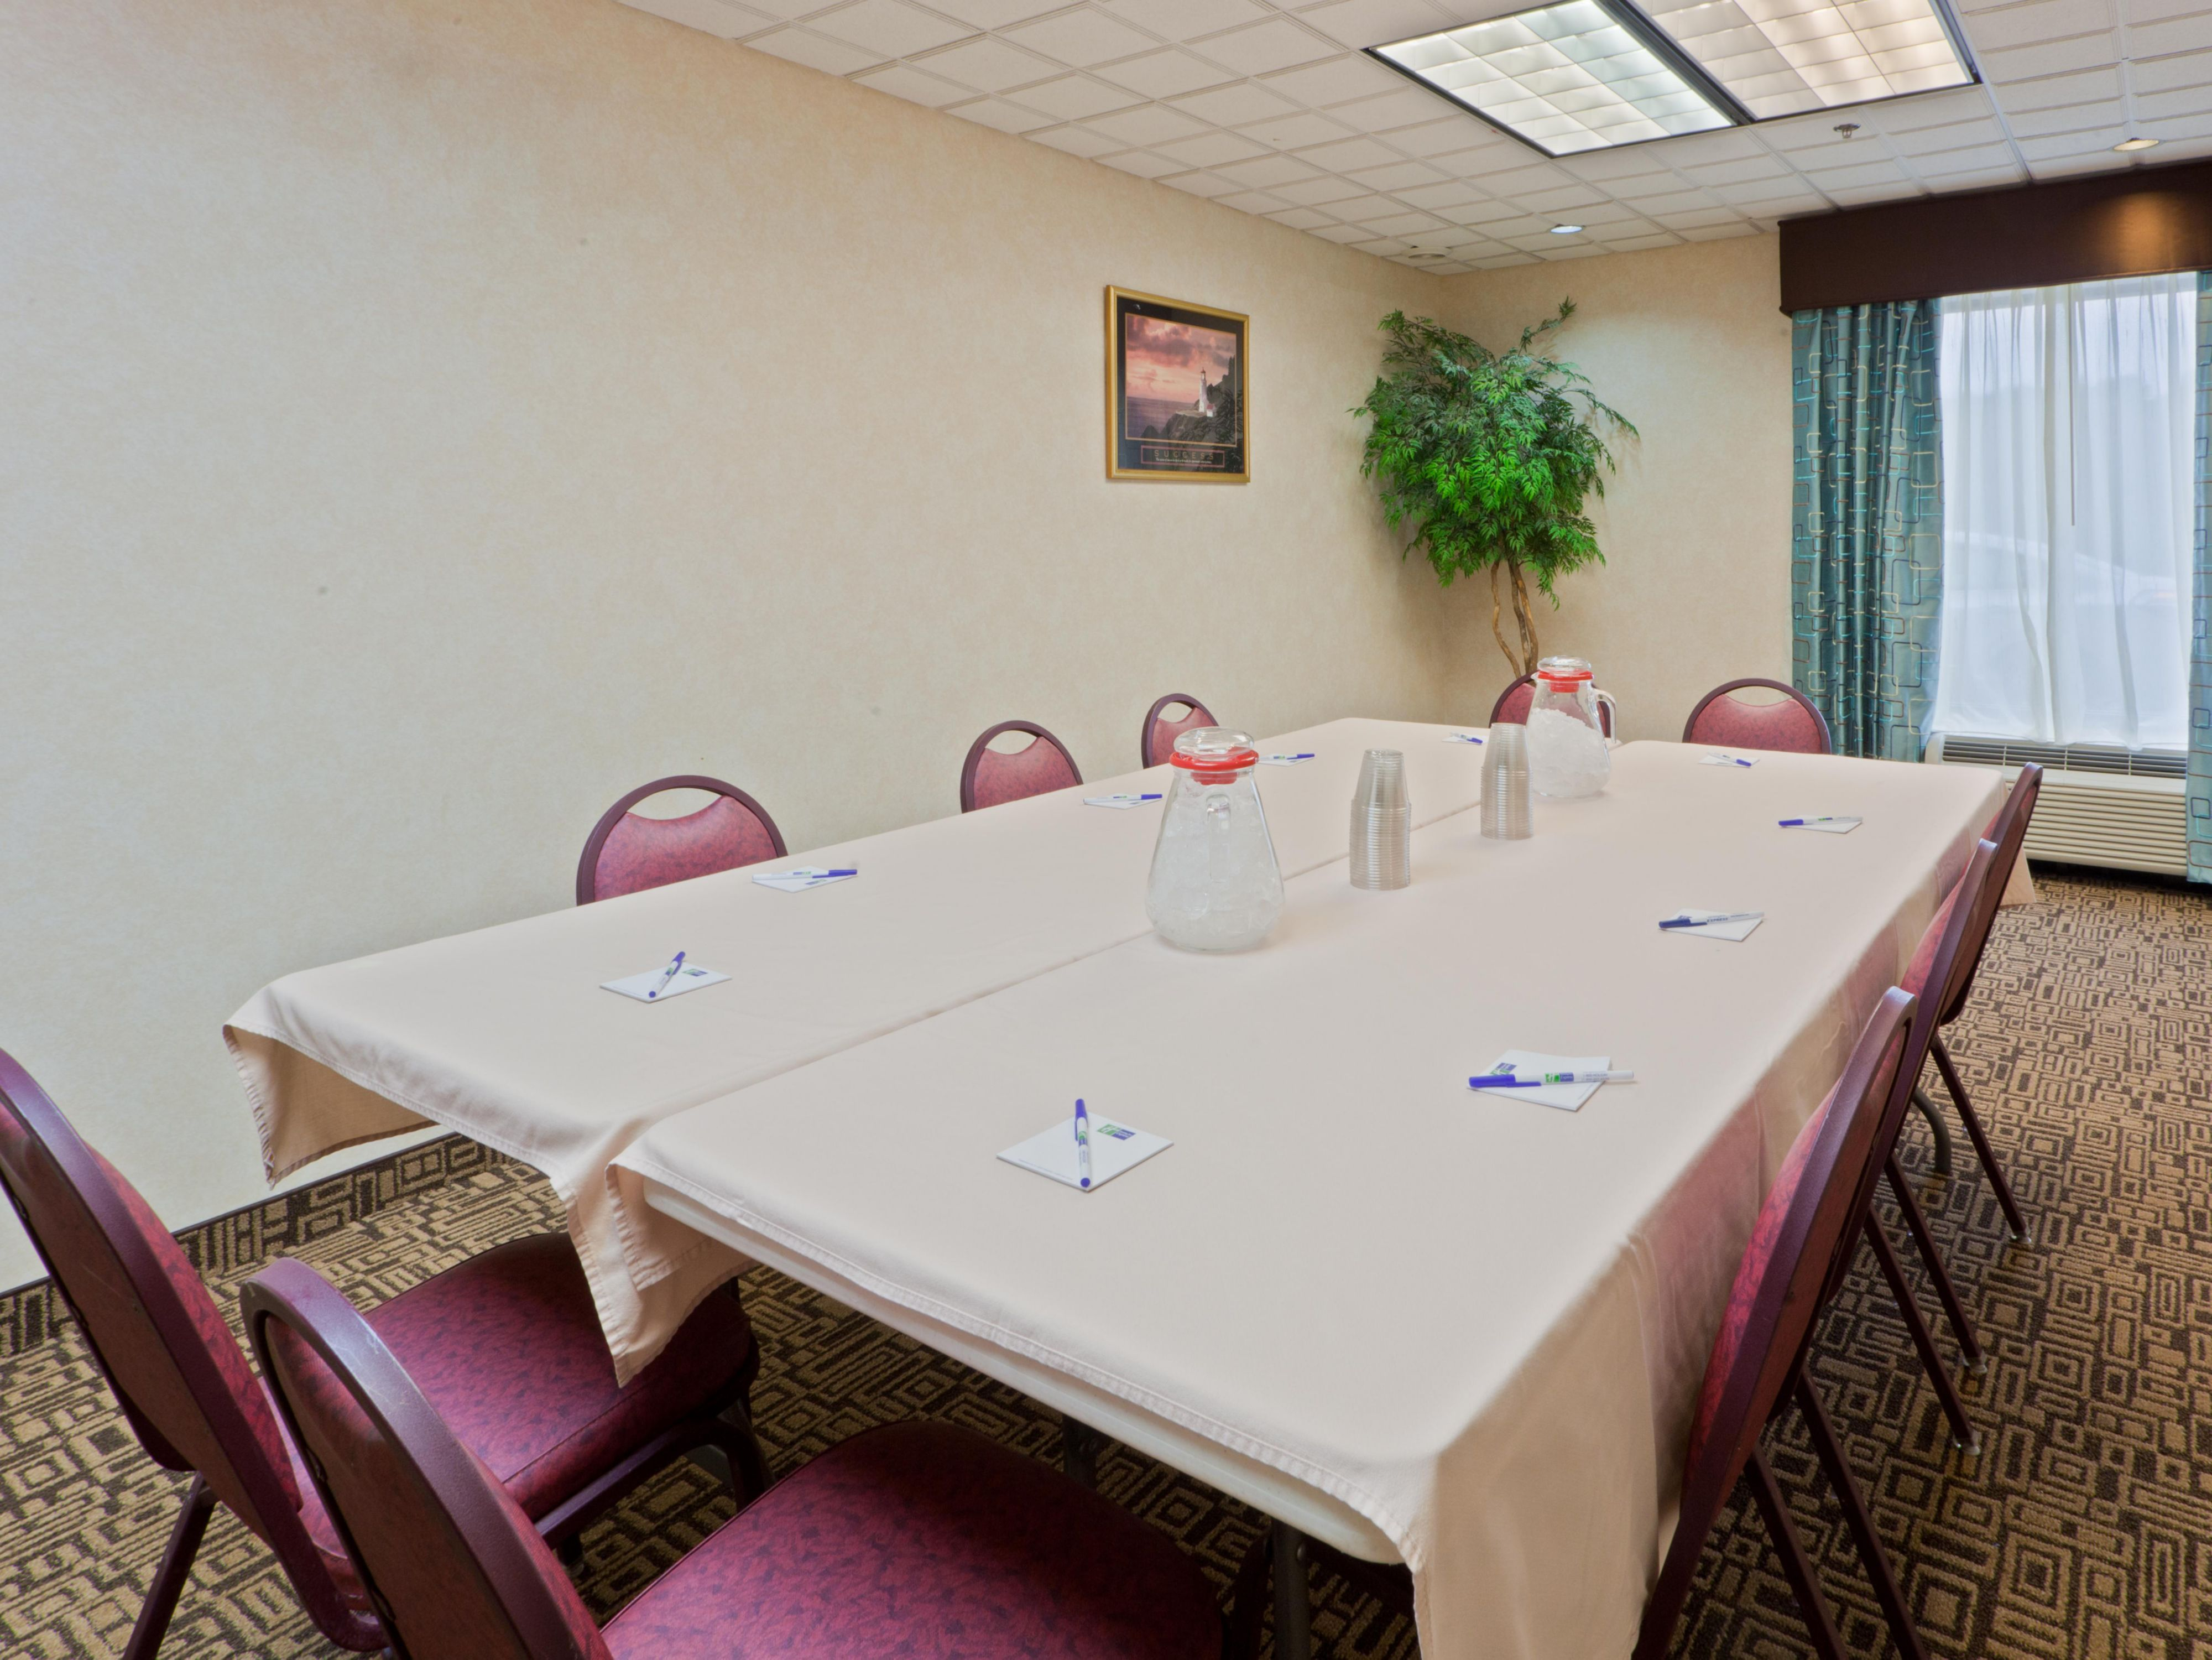 Call our Sales Team today to book your meeting room! 304-746-4748